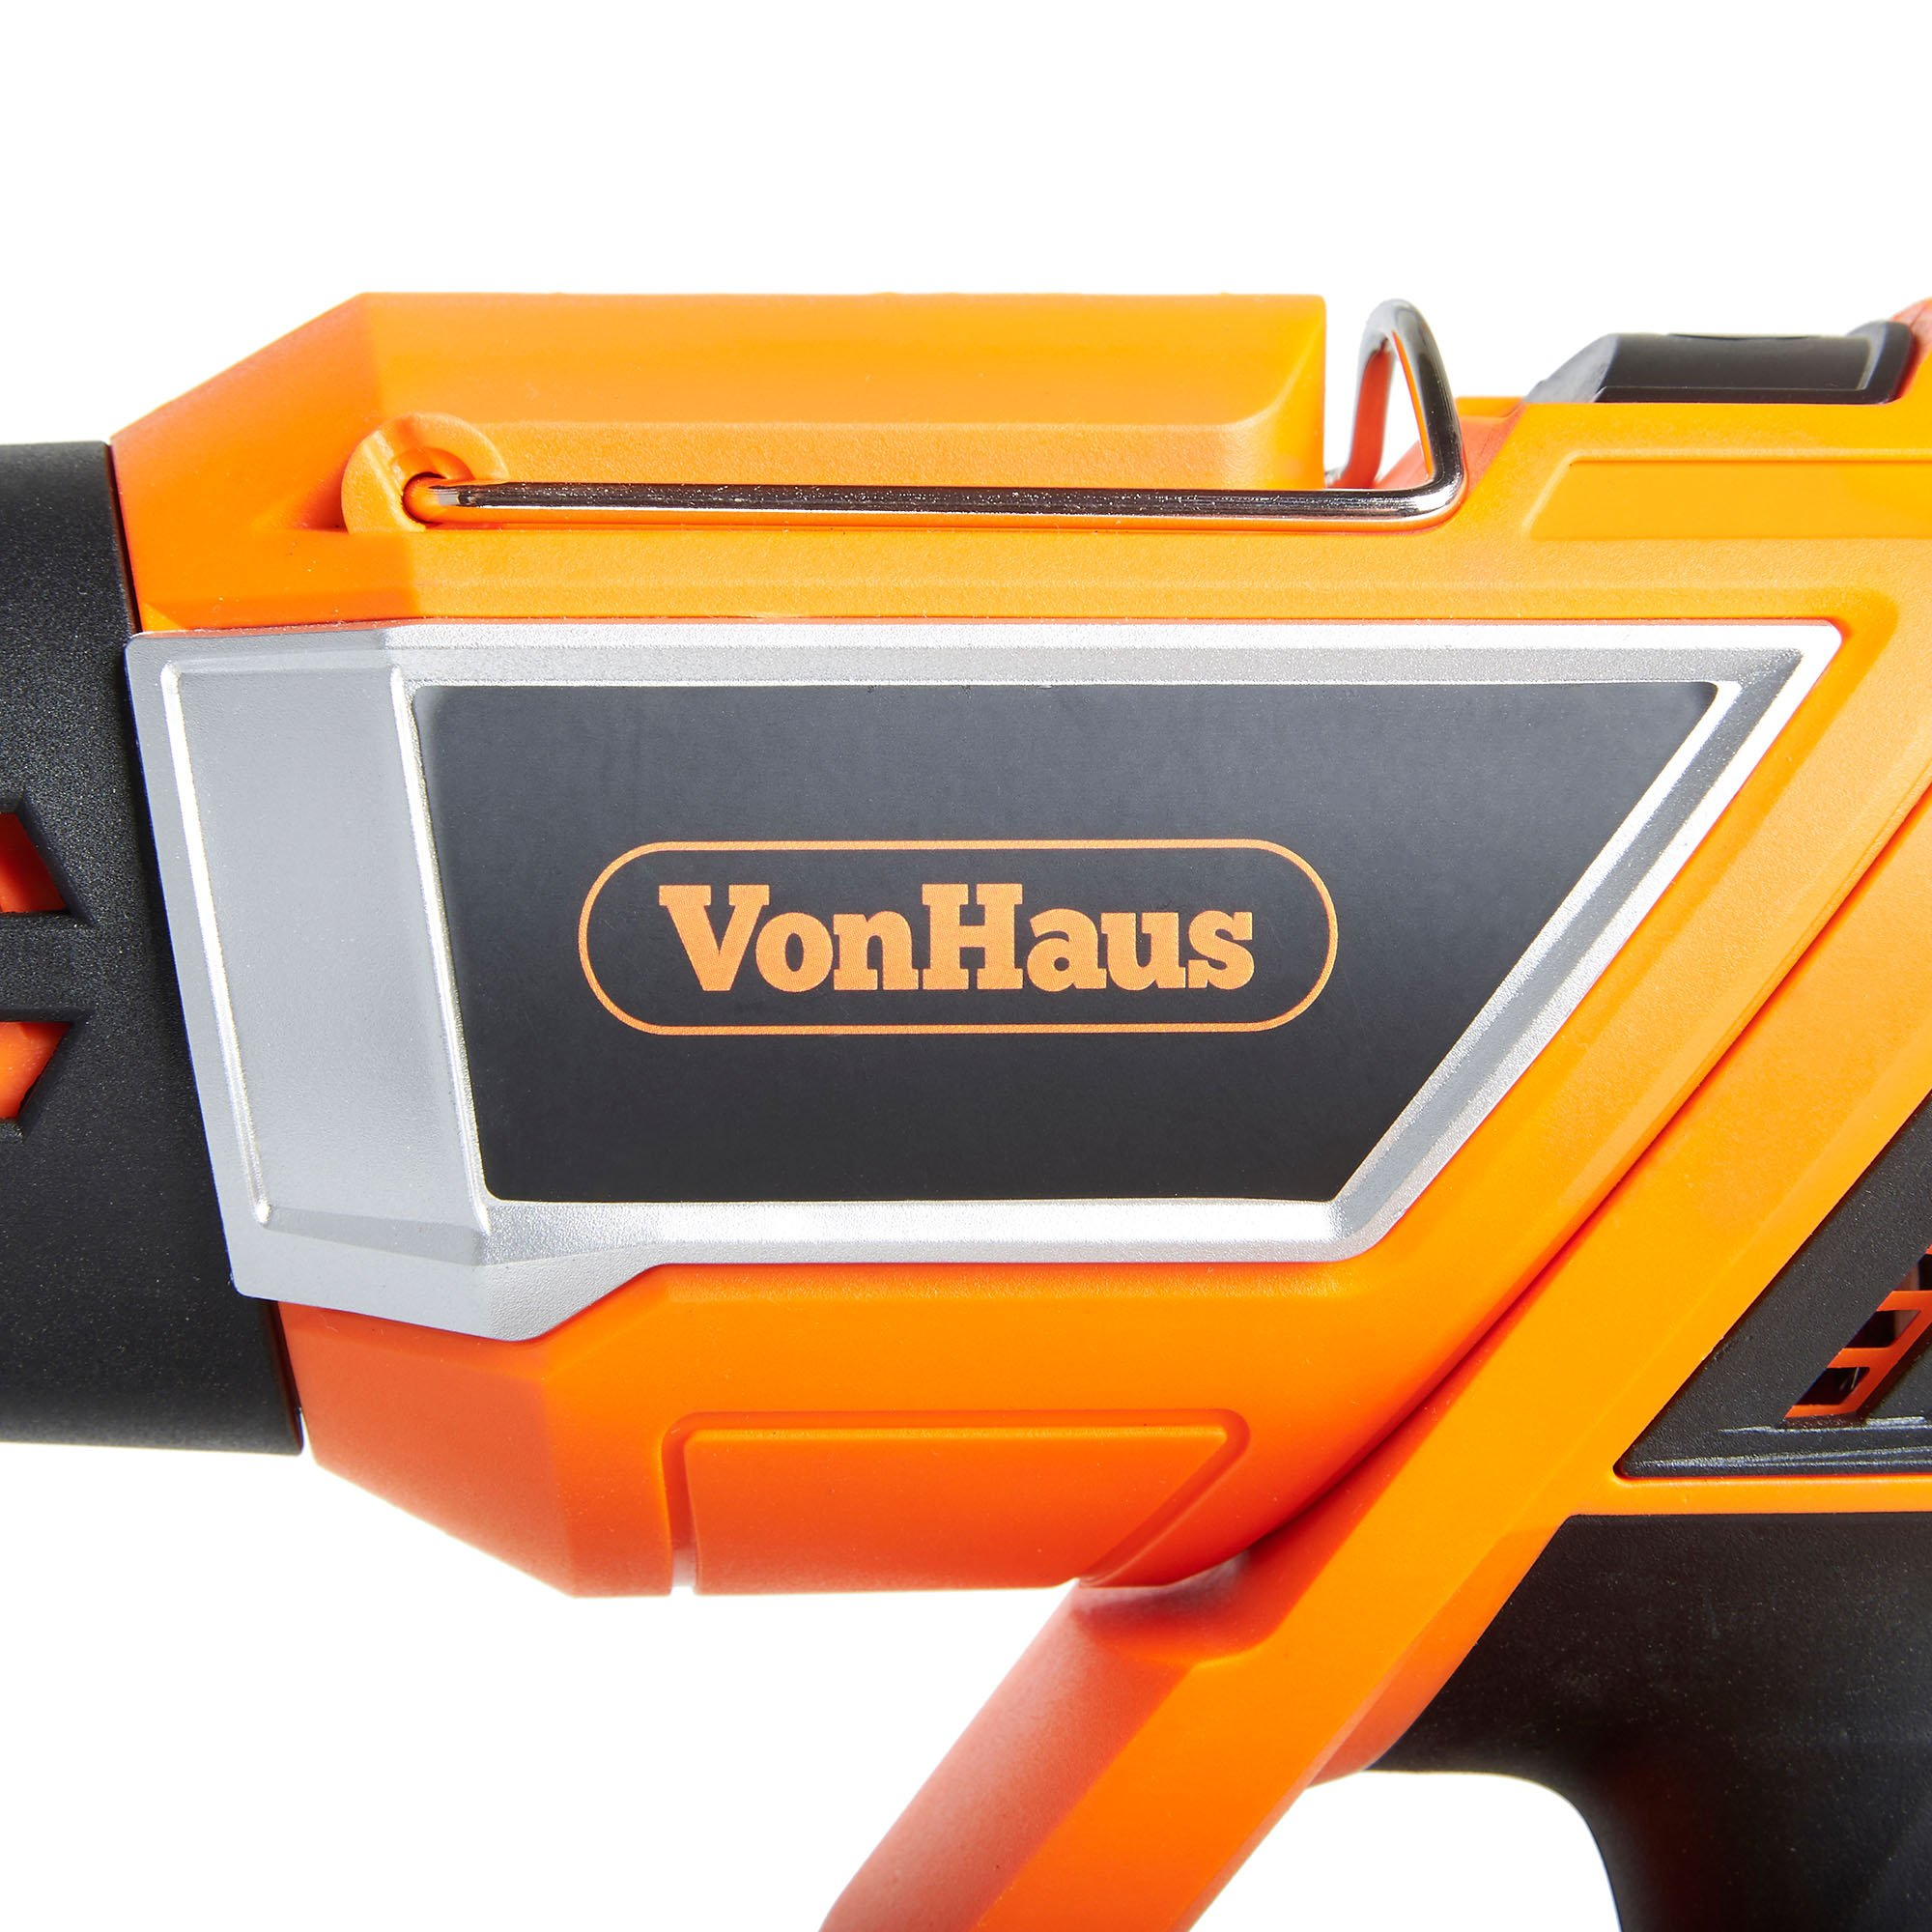 VonHaus 1500W Heat Gun Hot Air Gun with Variable Temperature Control, 3-Position Adjustable Handle and 5 Nozzle Attachments for Shrinking PVC, Removing Paint, Bending Pipes, BBQ Grills by VonHaus (Image #7)